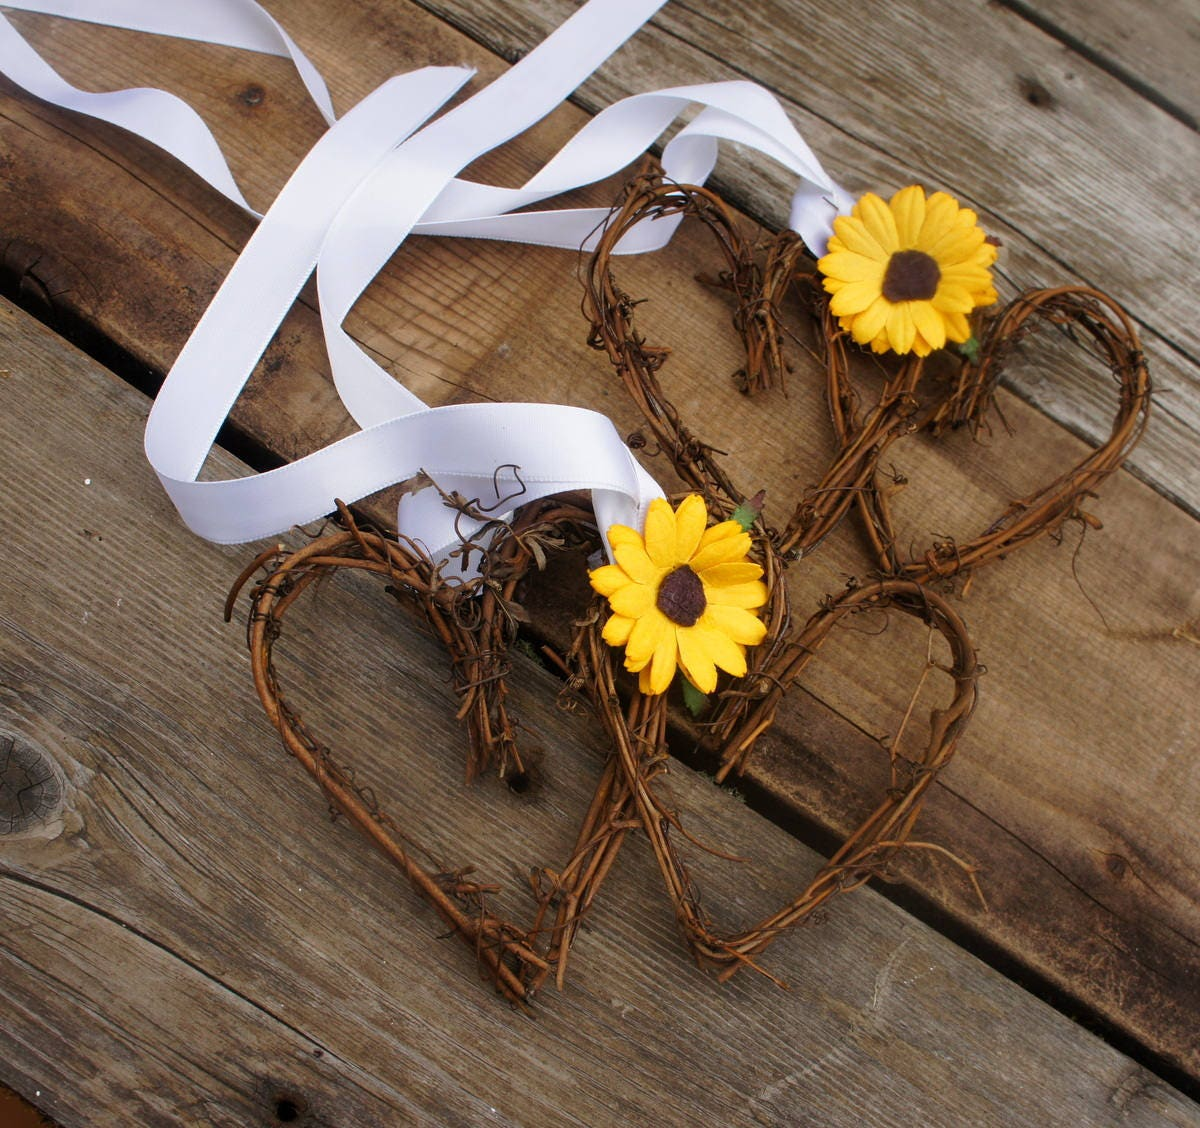 Rustic Pew Decorations For Fall Wedding Reception Or Autumn Bride